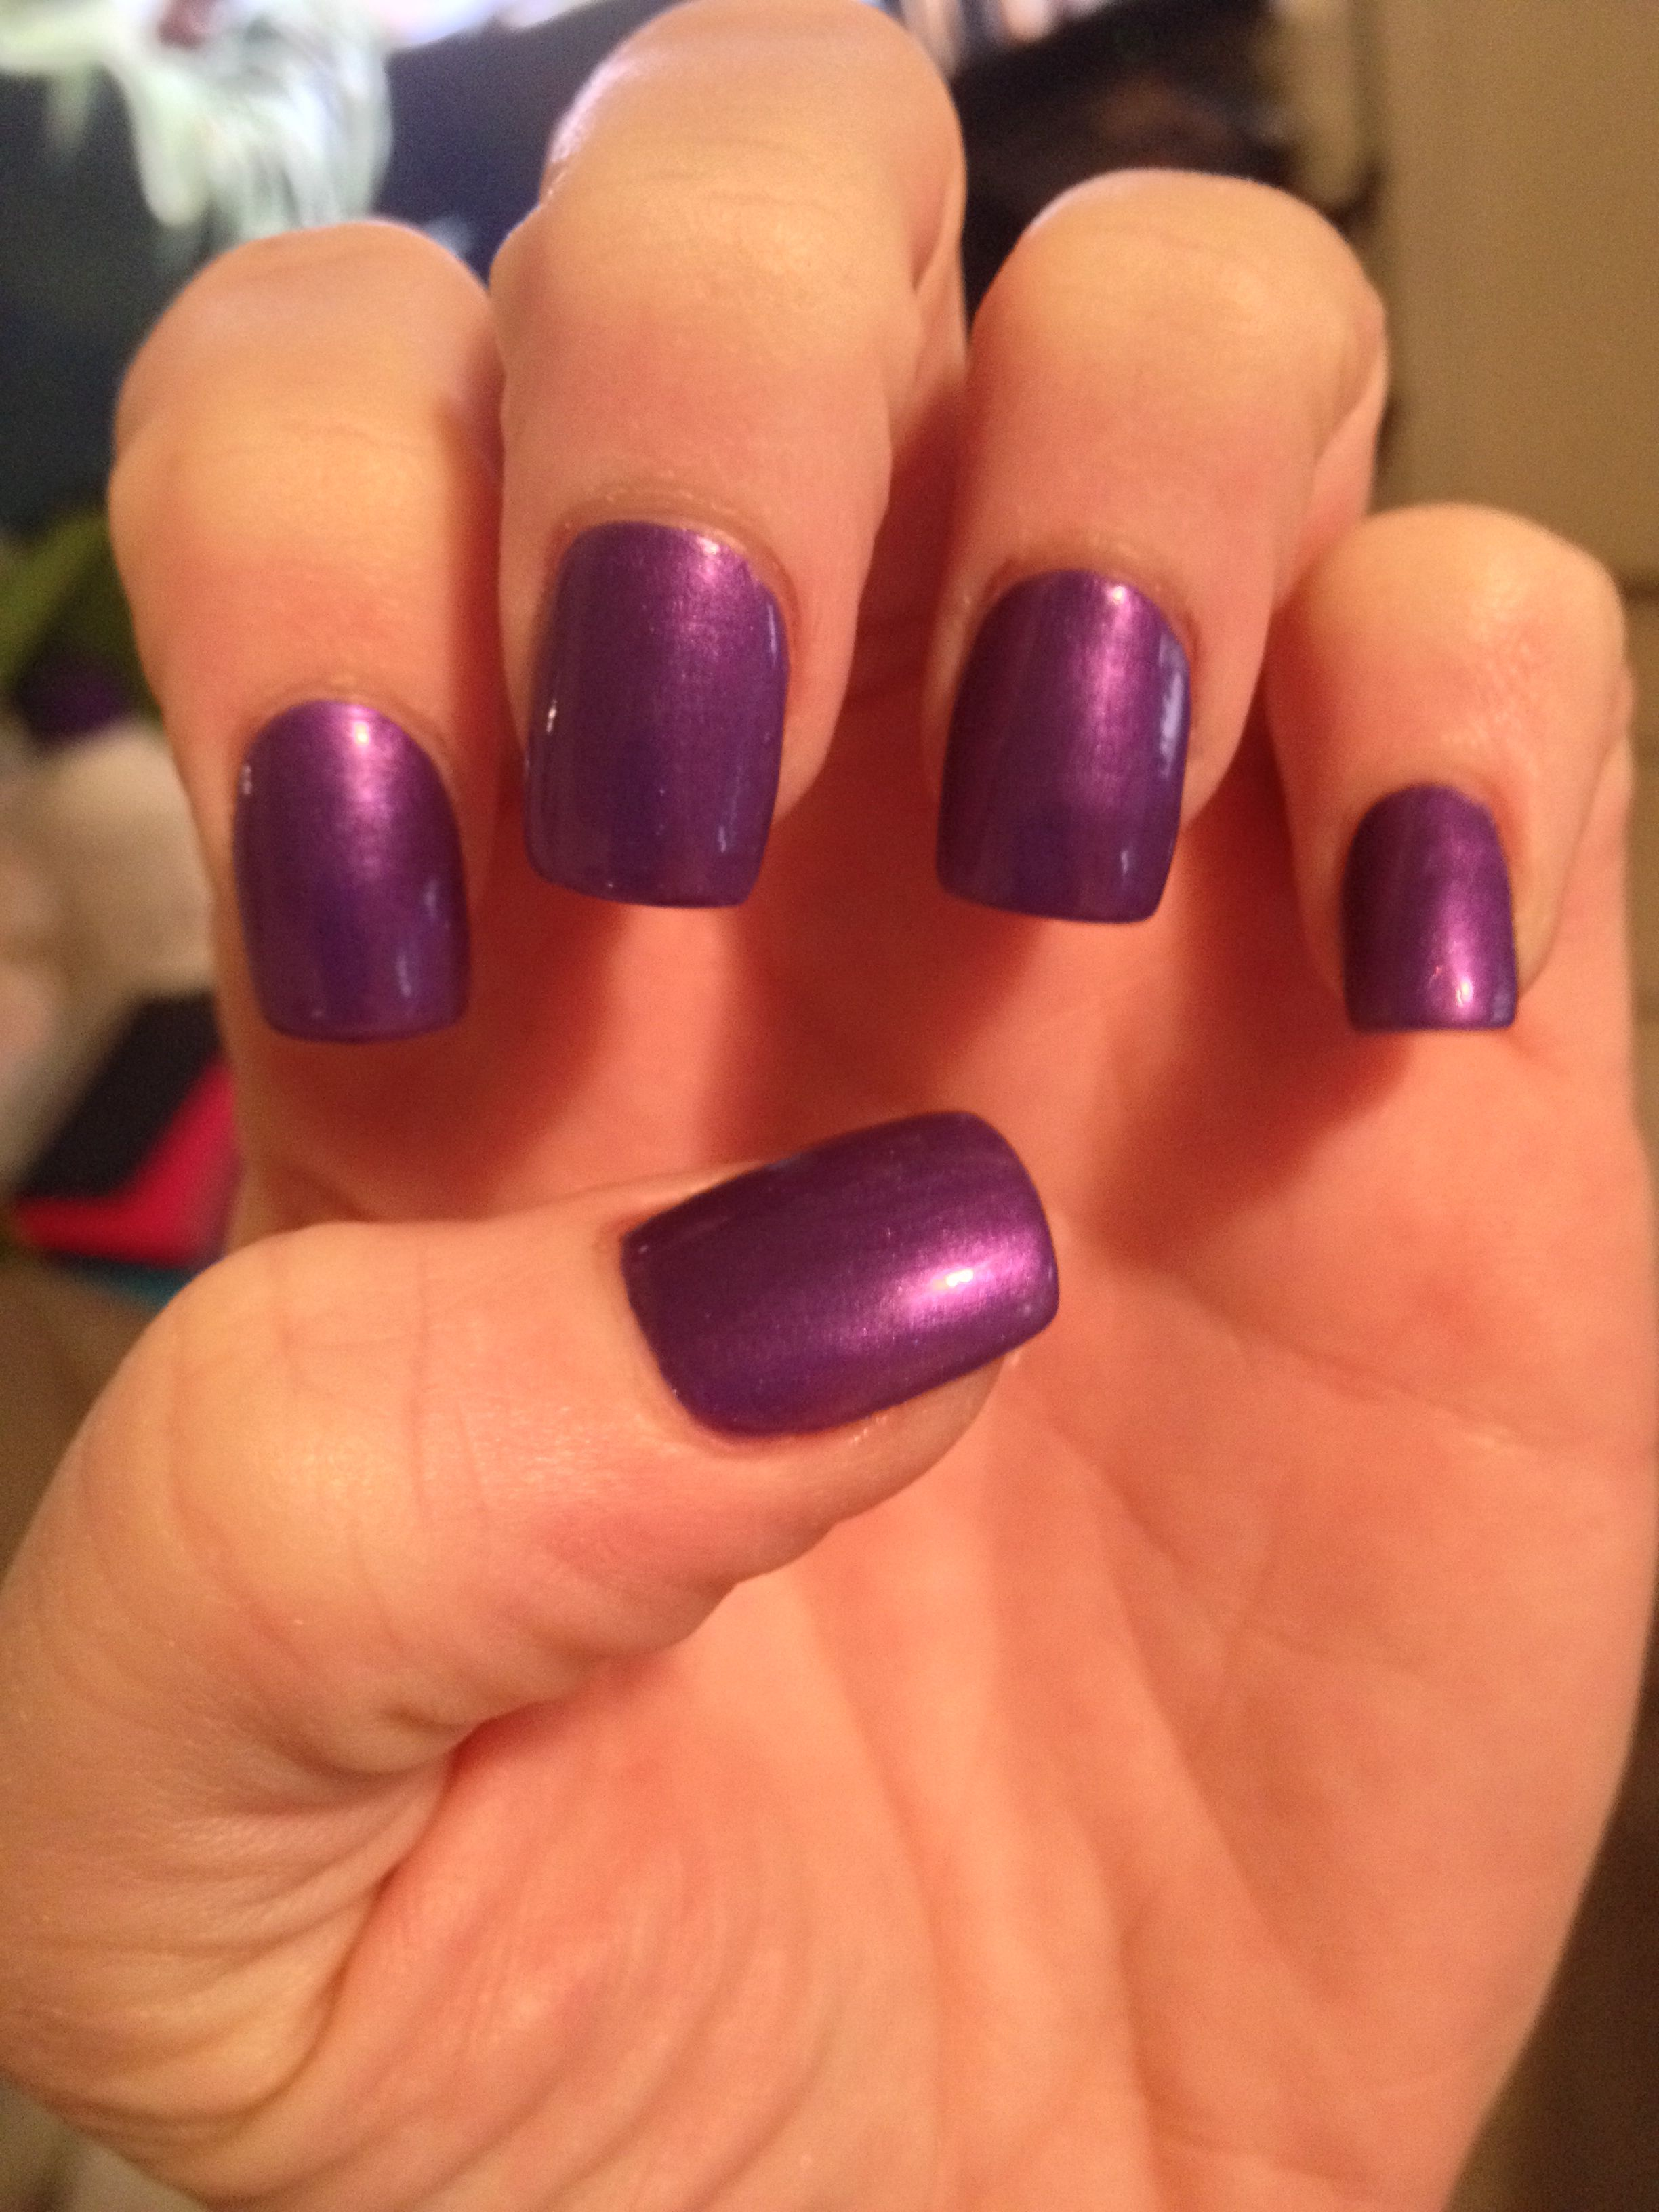 Crohns Awareness Nails 2013 | Nails | Pinterest | More Crohns ...